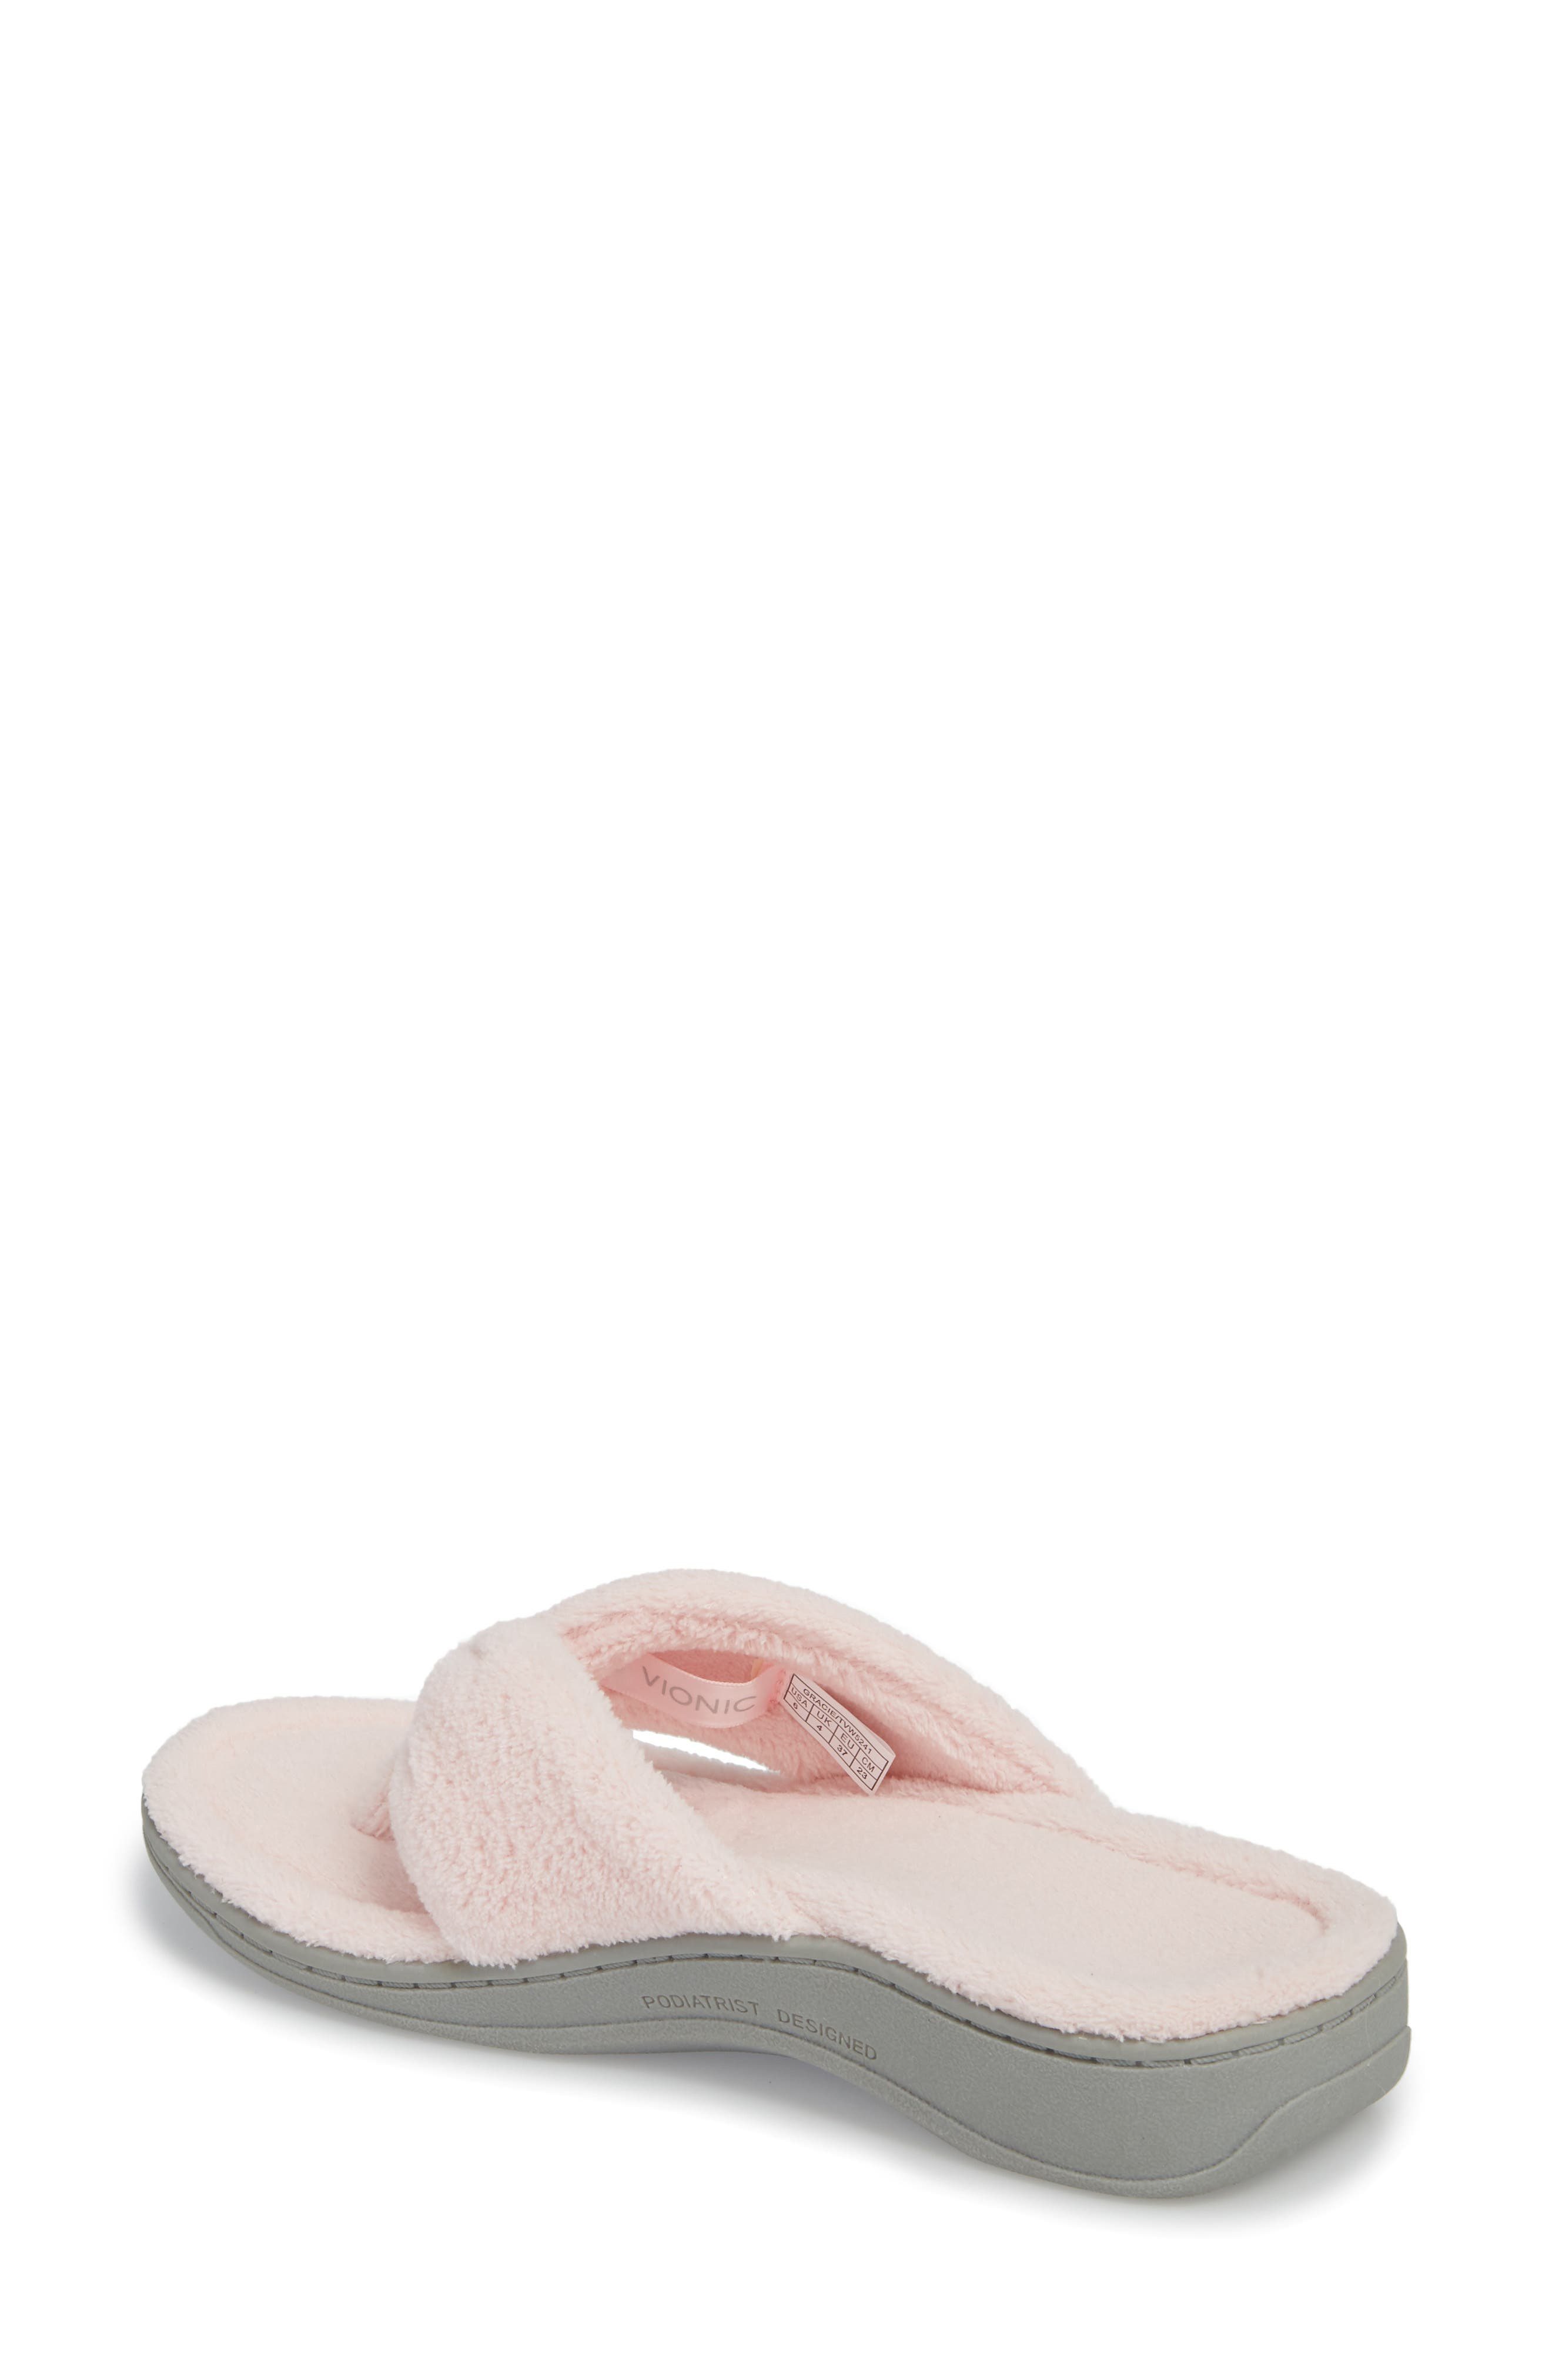 Gracie Slipper,                             Alternate thumbnail 2, color,                             Pink